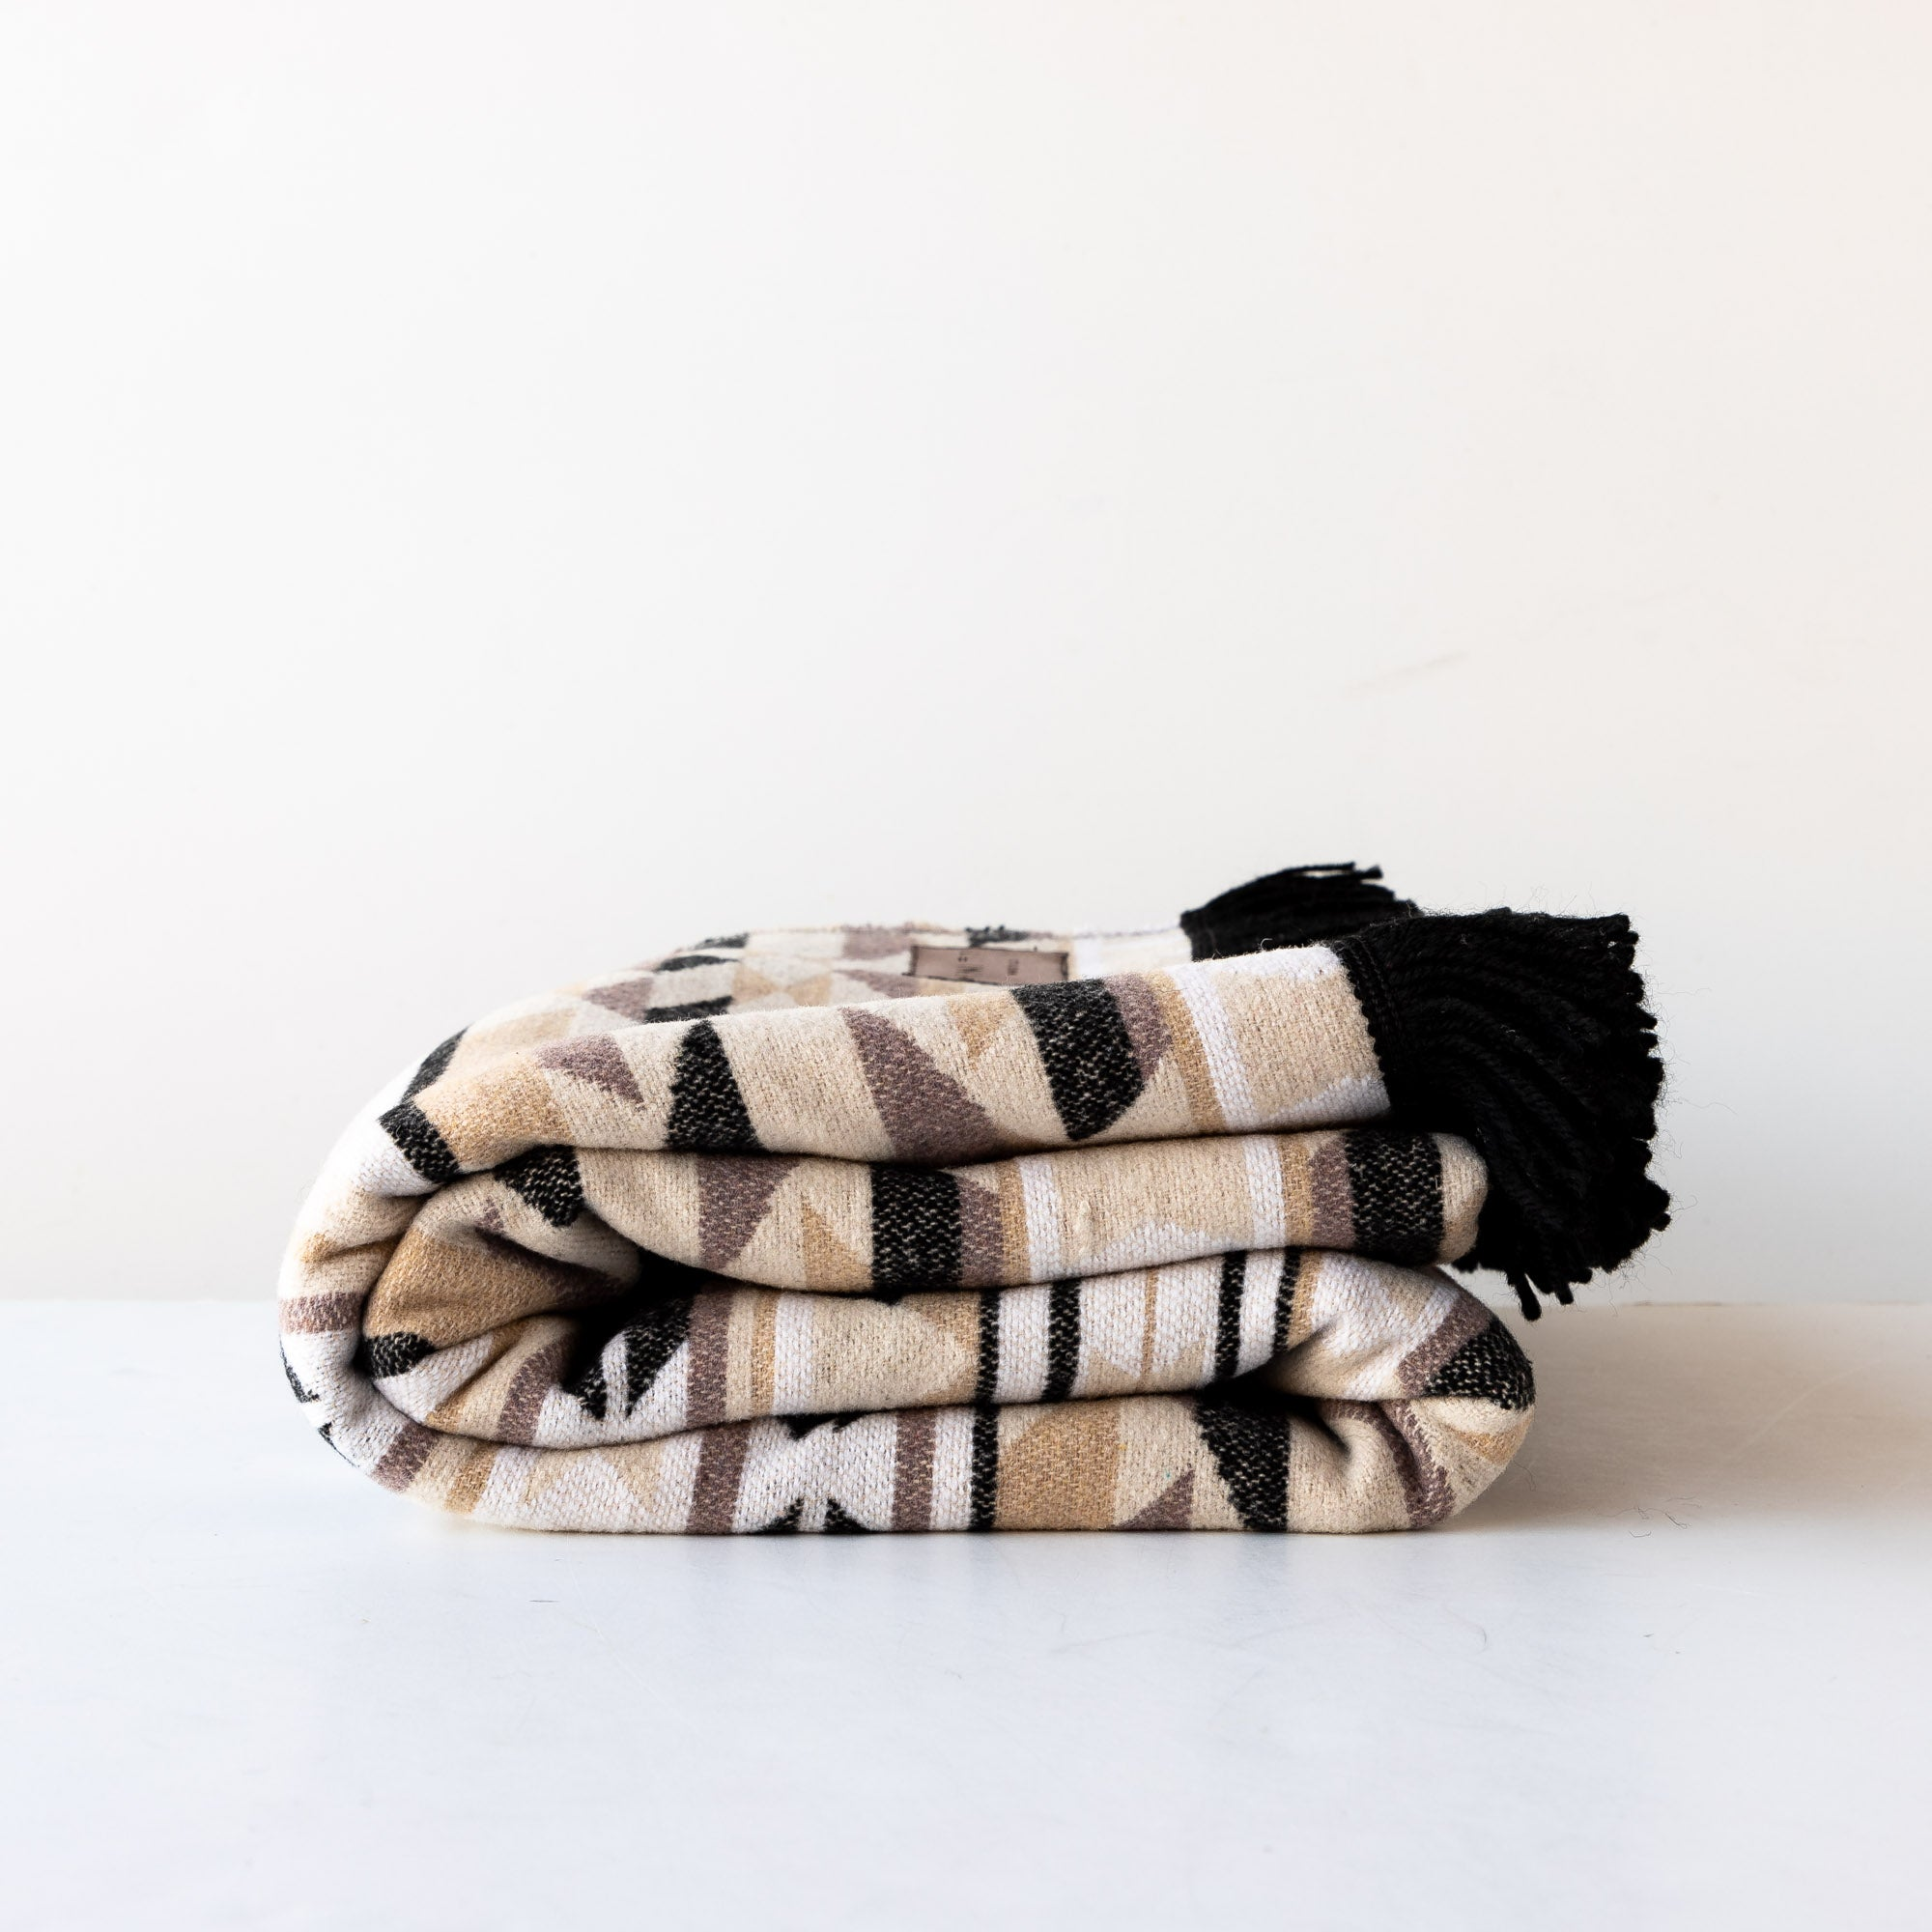 Birch - Native Motif Boho Wool Blanket / Throw - Sold by CGic & Basta